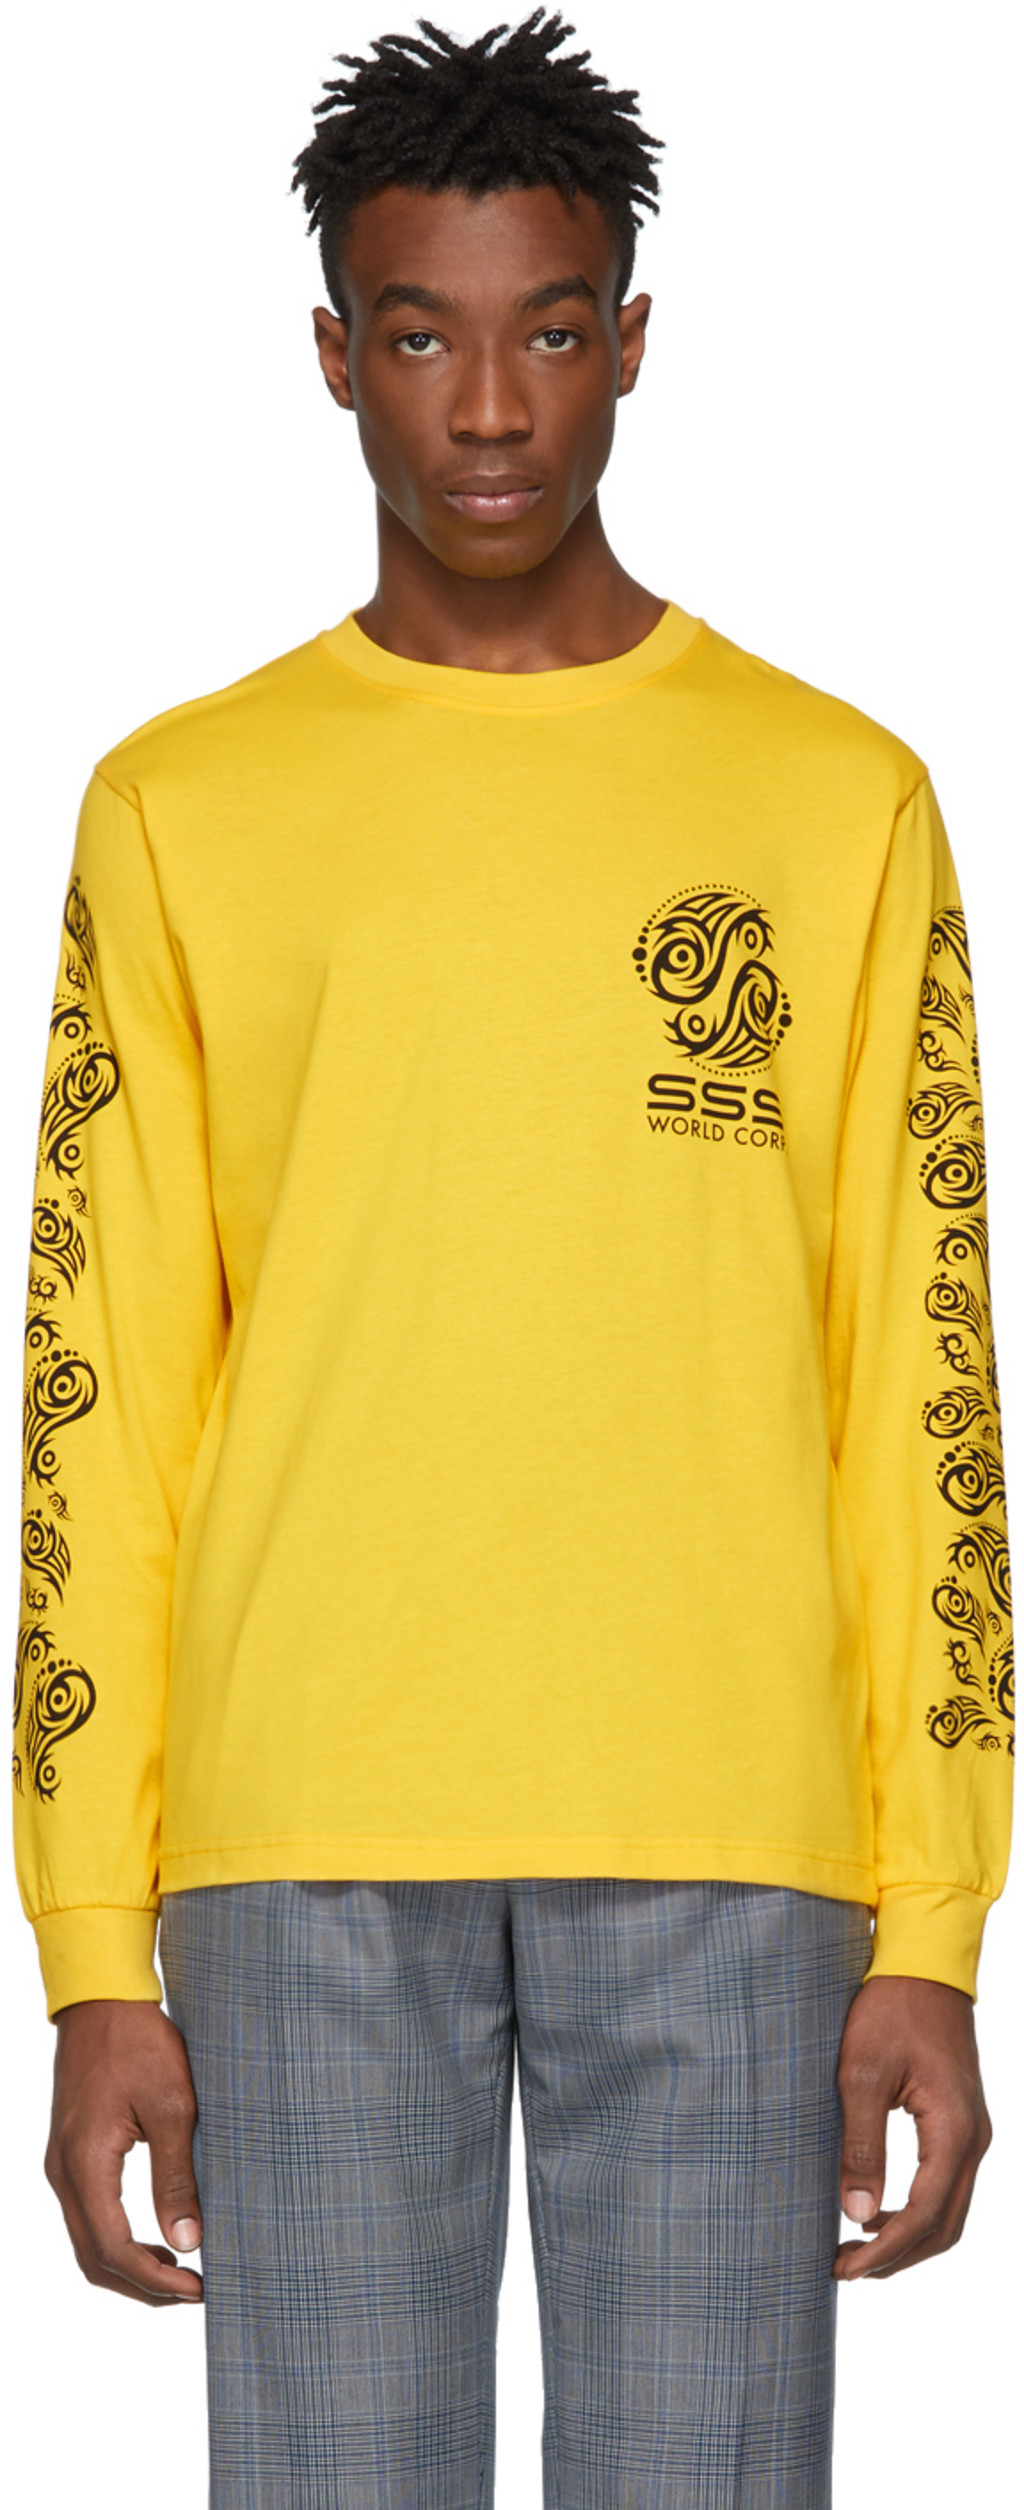 a0cecdf9 Sss World Corp for Men SS19 Collection | SSENSE